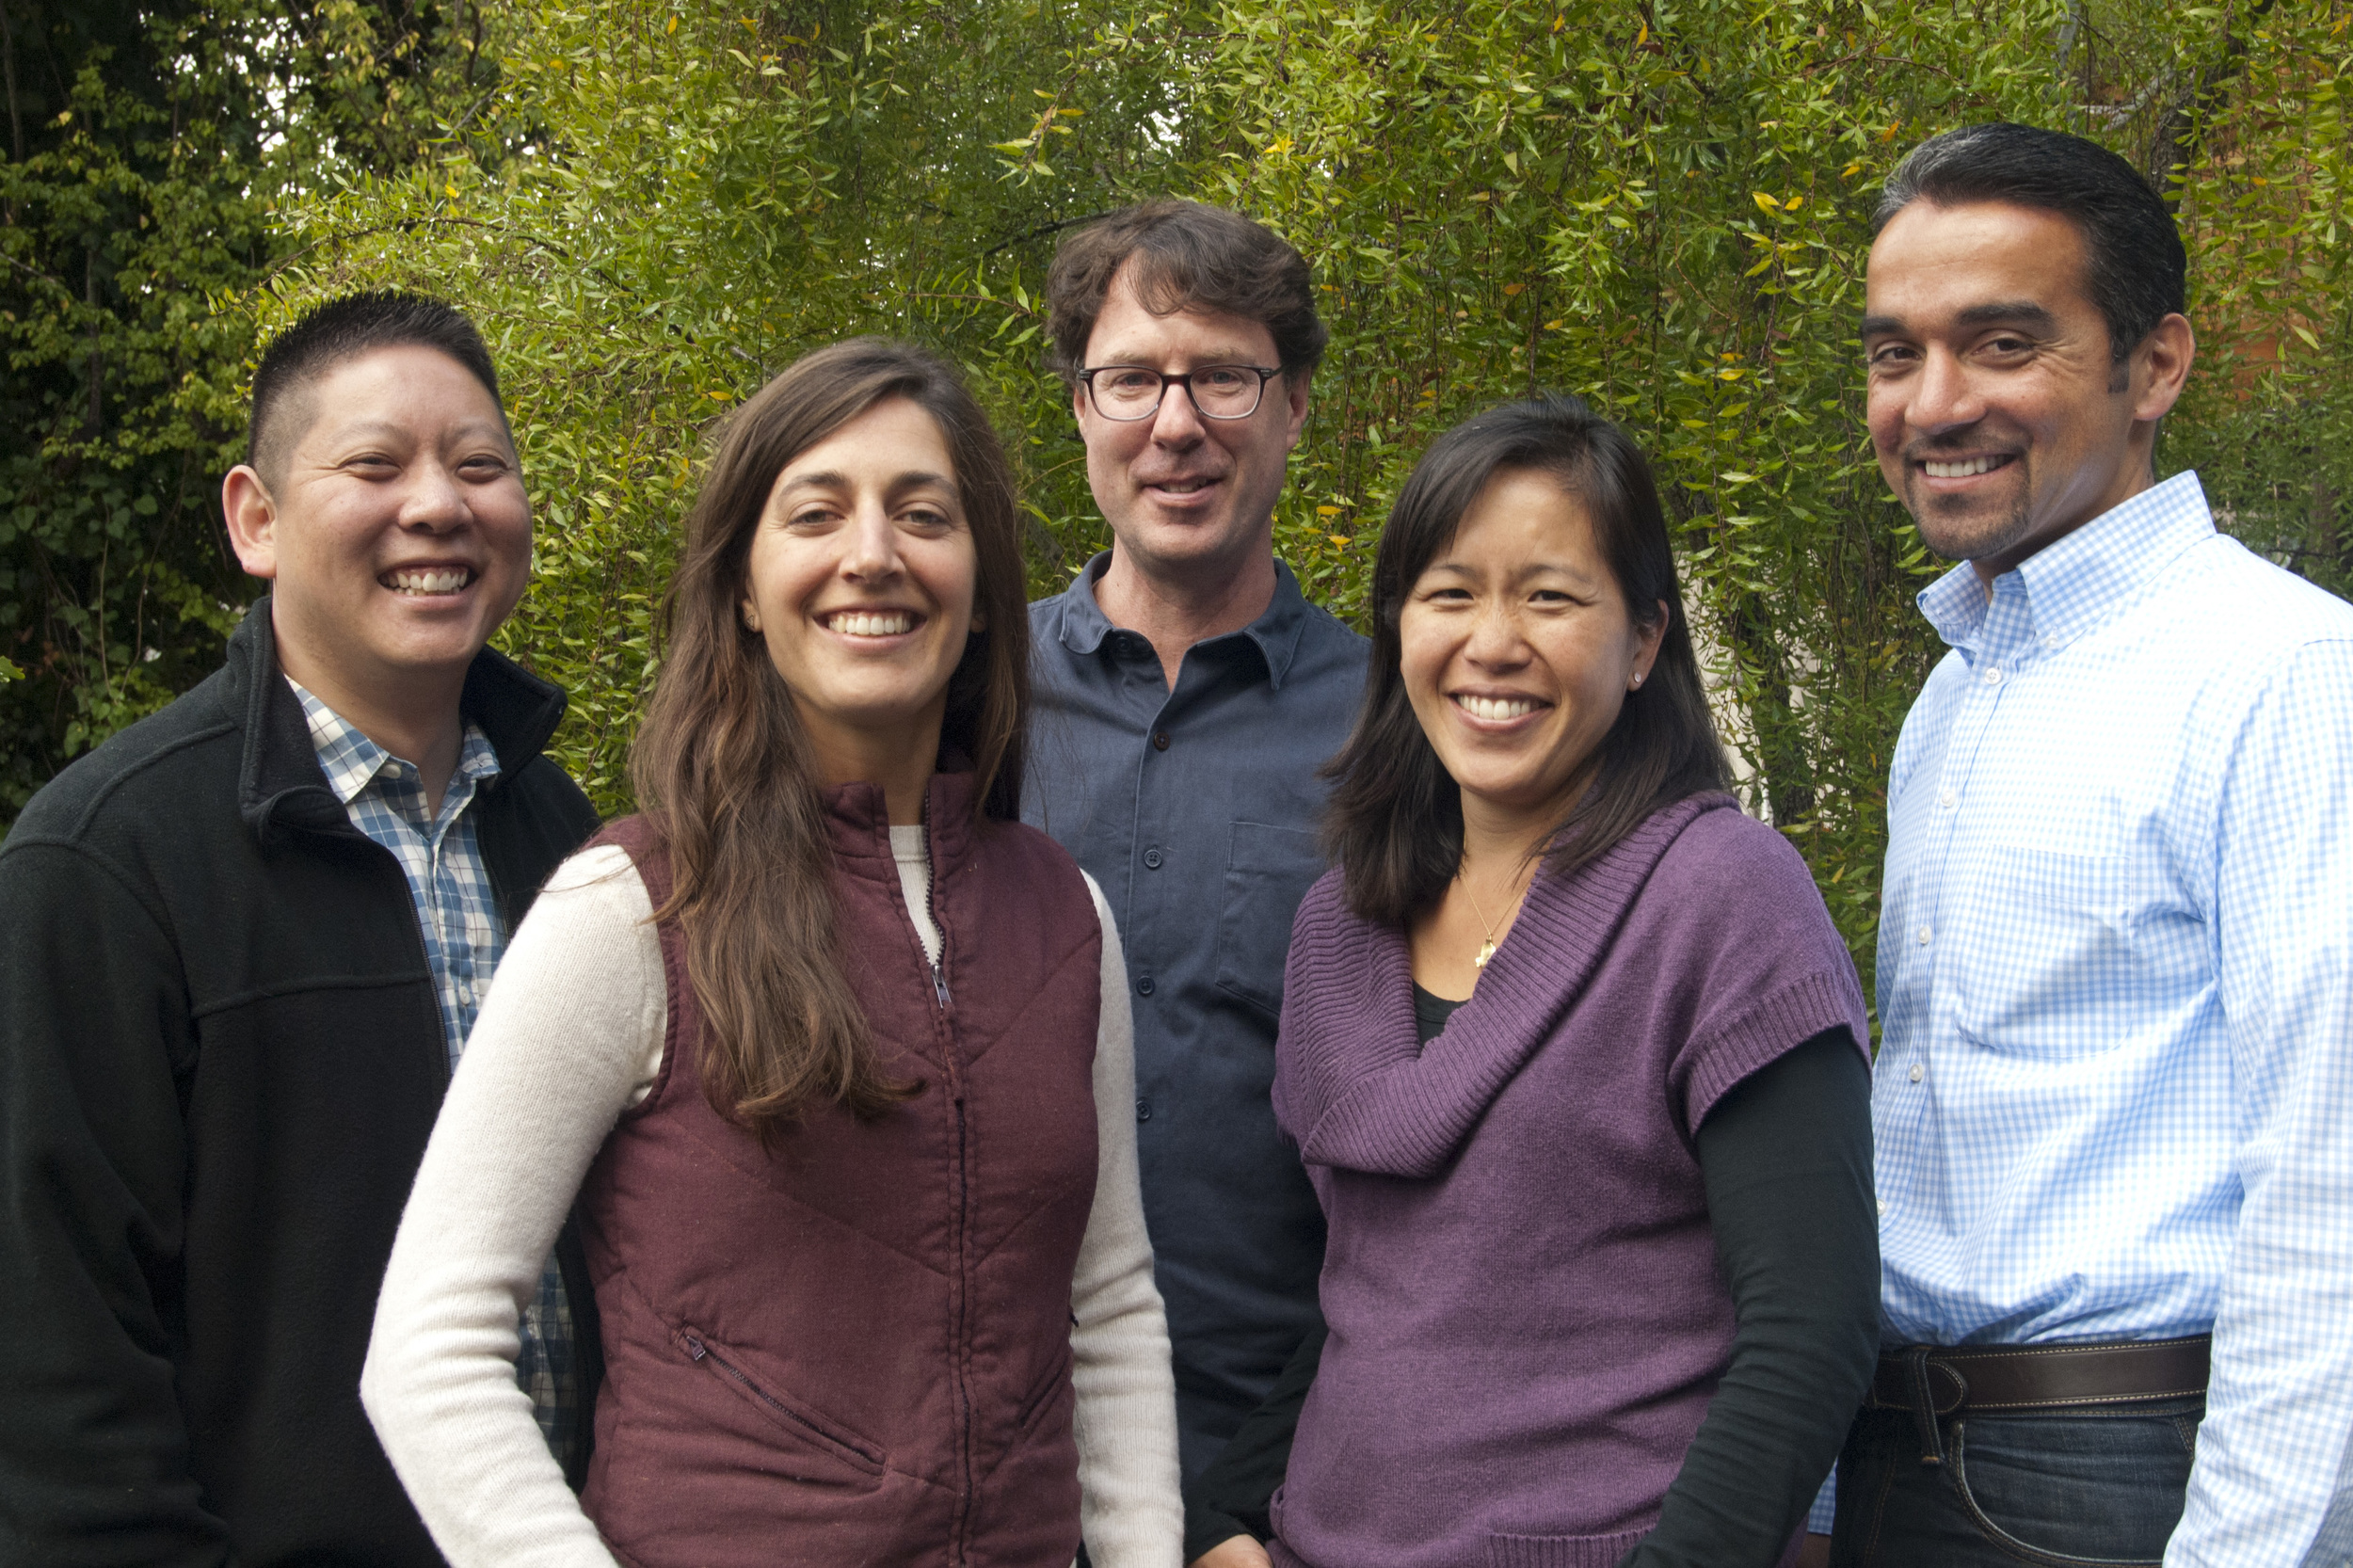 L-R: Anthony Chang  (Founder and Executive Director),  Paige Phinney  (Associate Director), Thomas Nelson (joinining us in January as Farm Business Advisor),  Pei-Yee Woo  (Associate Director)  and   David Mancera  (Farm Business Advisor)